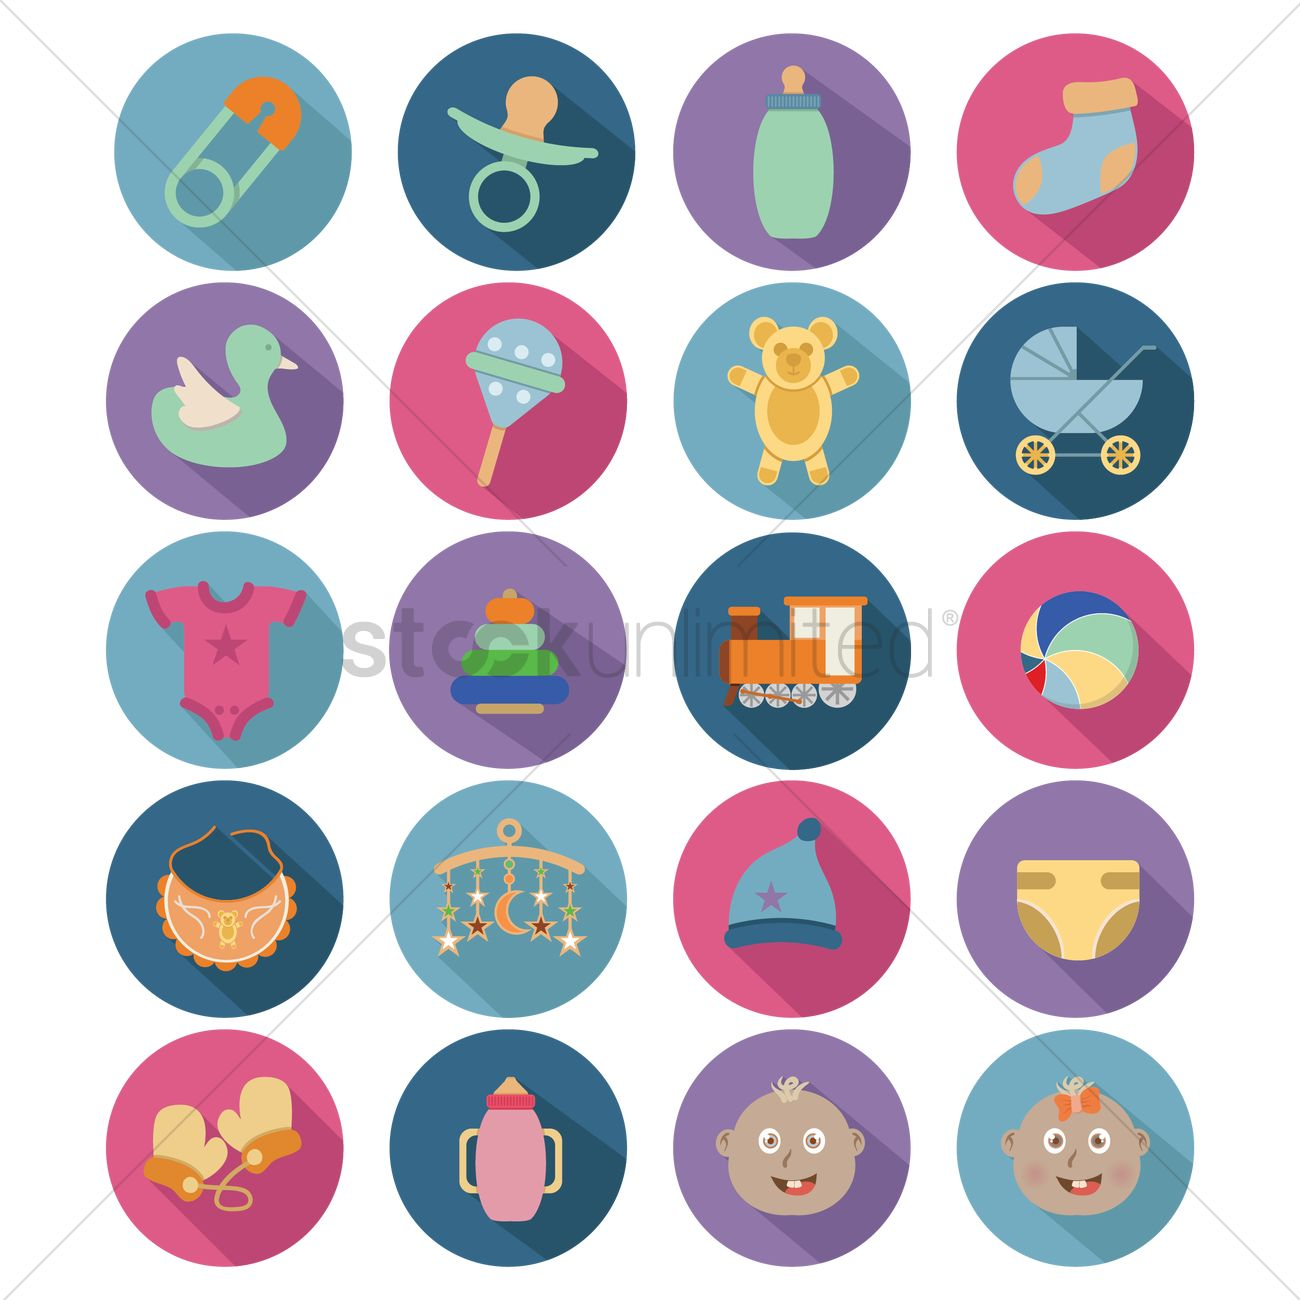 Baby stuff icons Vector Image - 1270261   StockUnlimited